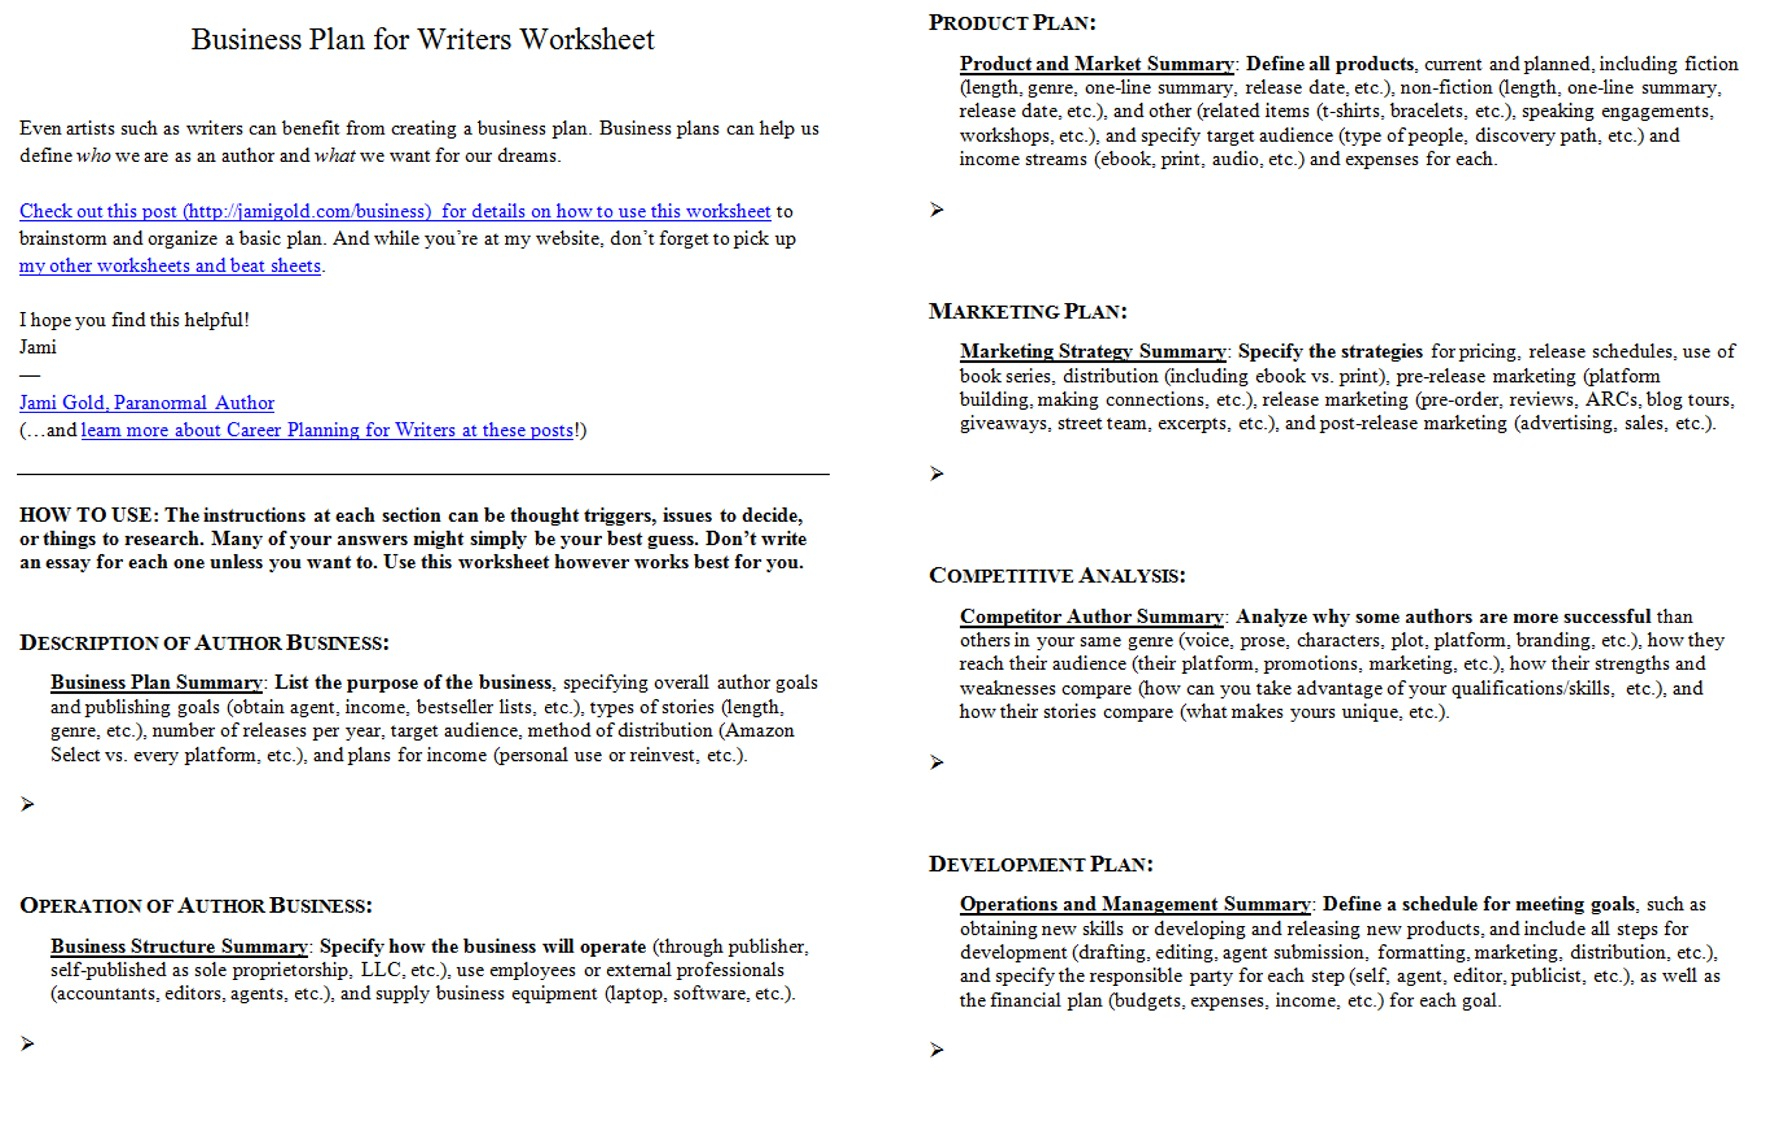 Weirdmailus  Scenic Worksheets For Writers  Jami Gold Paranormal Author With Exciting Screen Shot Of Both Pages Of The Business Plan For Writers Worksheet With Astonishing Graphical Transformations Worksheet Also Free Food Pyramid Worksheets In Addition Sequence Worksheets Kindergarten And Factoring Practice Worksheets As Well As Weekly Budget Worksheets Additionally Cellular Respiration Coloring Worksheet From Jamigoldcom With Weirdmailus  Exciting Worksheets For Writers  Jami Gold Paranormal Author With Astonishing Screen Shot Of Both Pages Of The Business Plan For Writers Worksheet And Scenic Graphical Transformations Worksheet Also Free Food Pyramid Worksheets In Addition Sequence Worksheets Kindergarten From Jamigoldcom